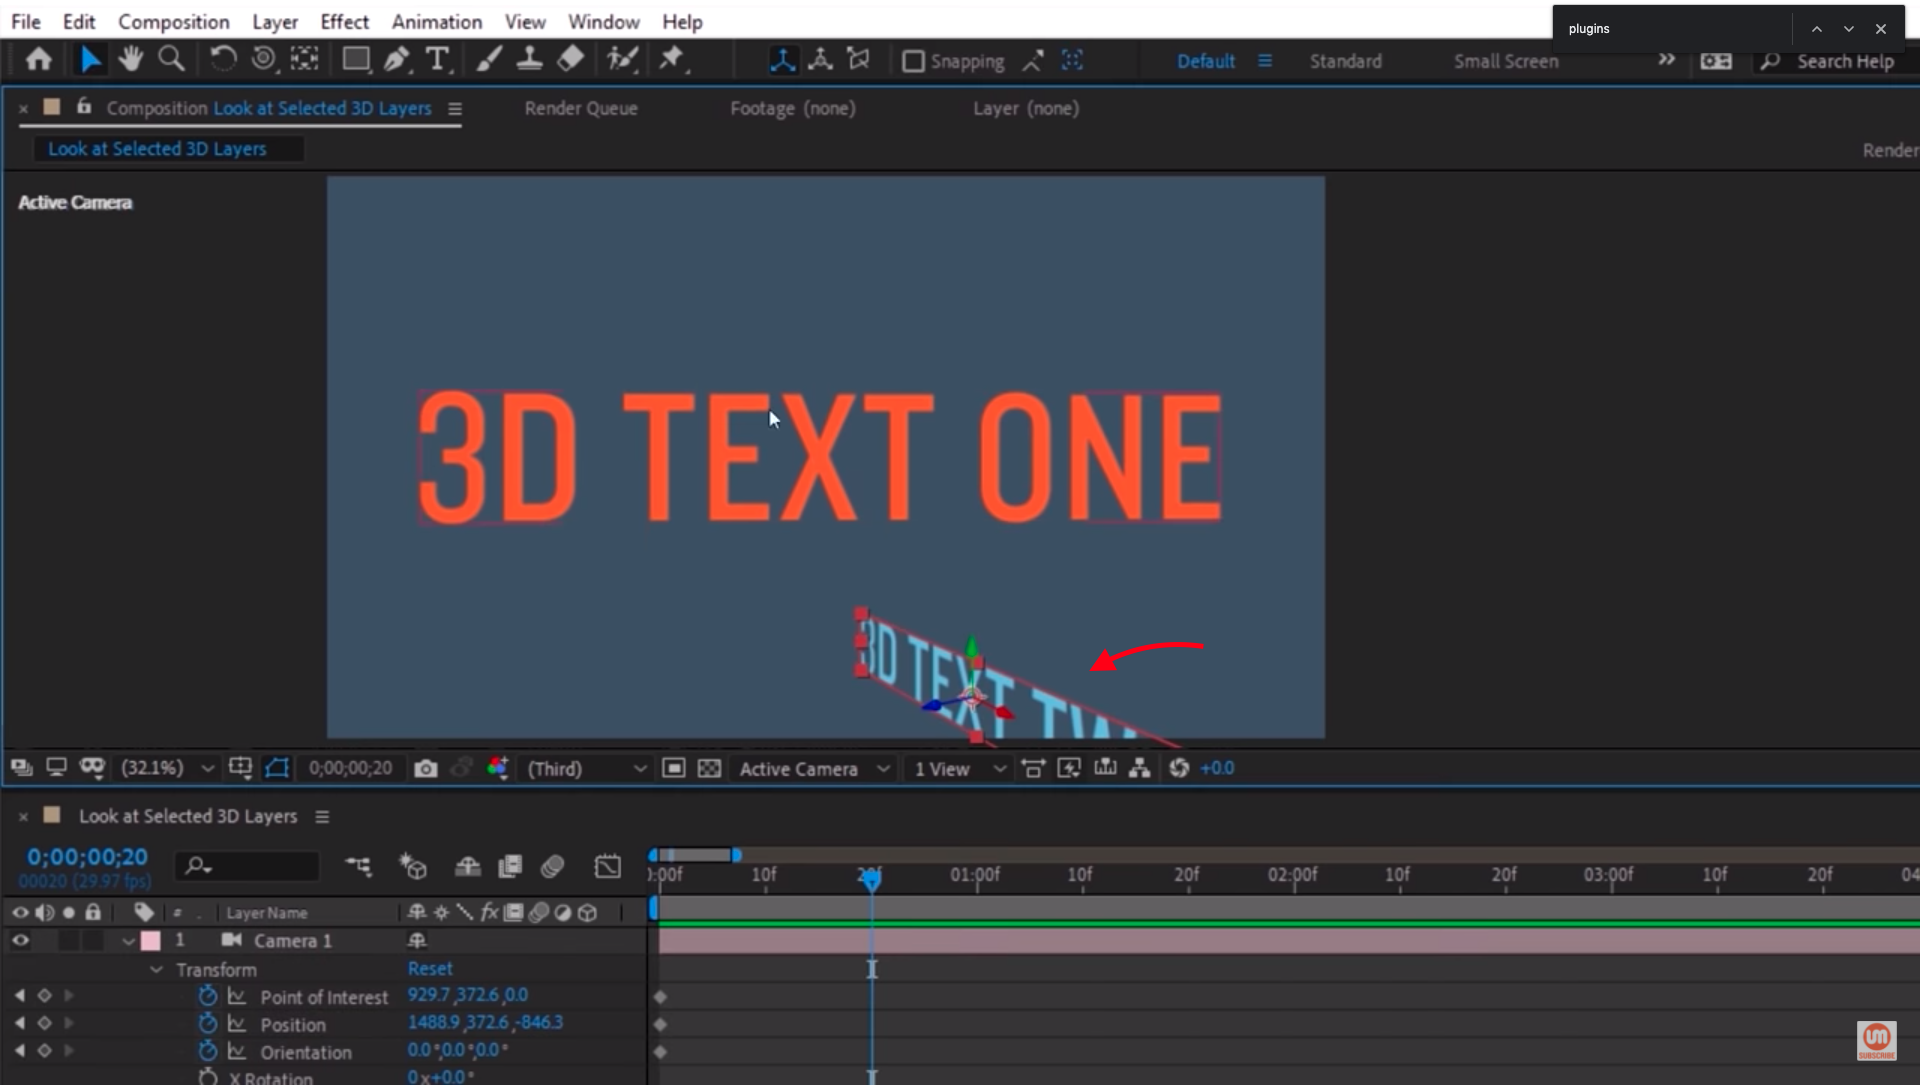 Select 3D Text After Effects